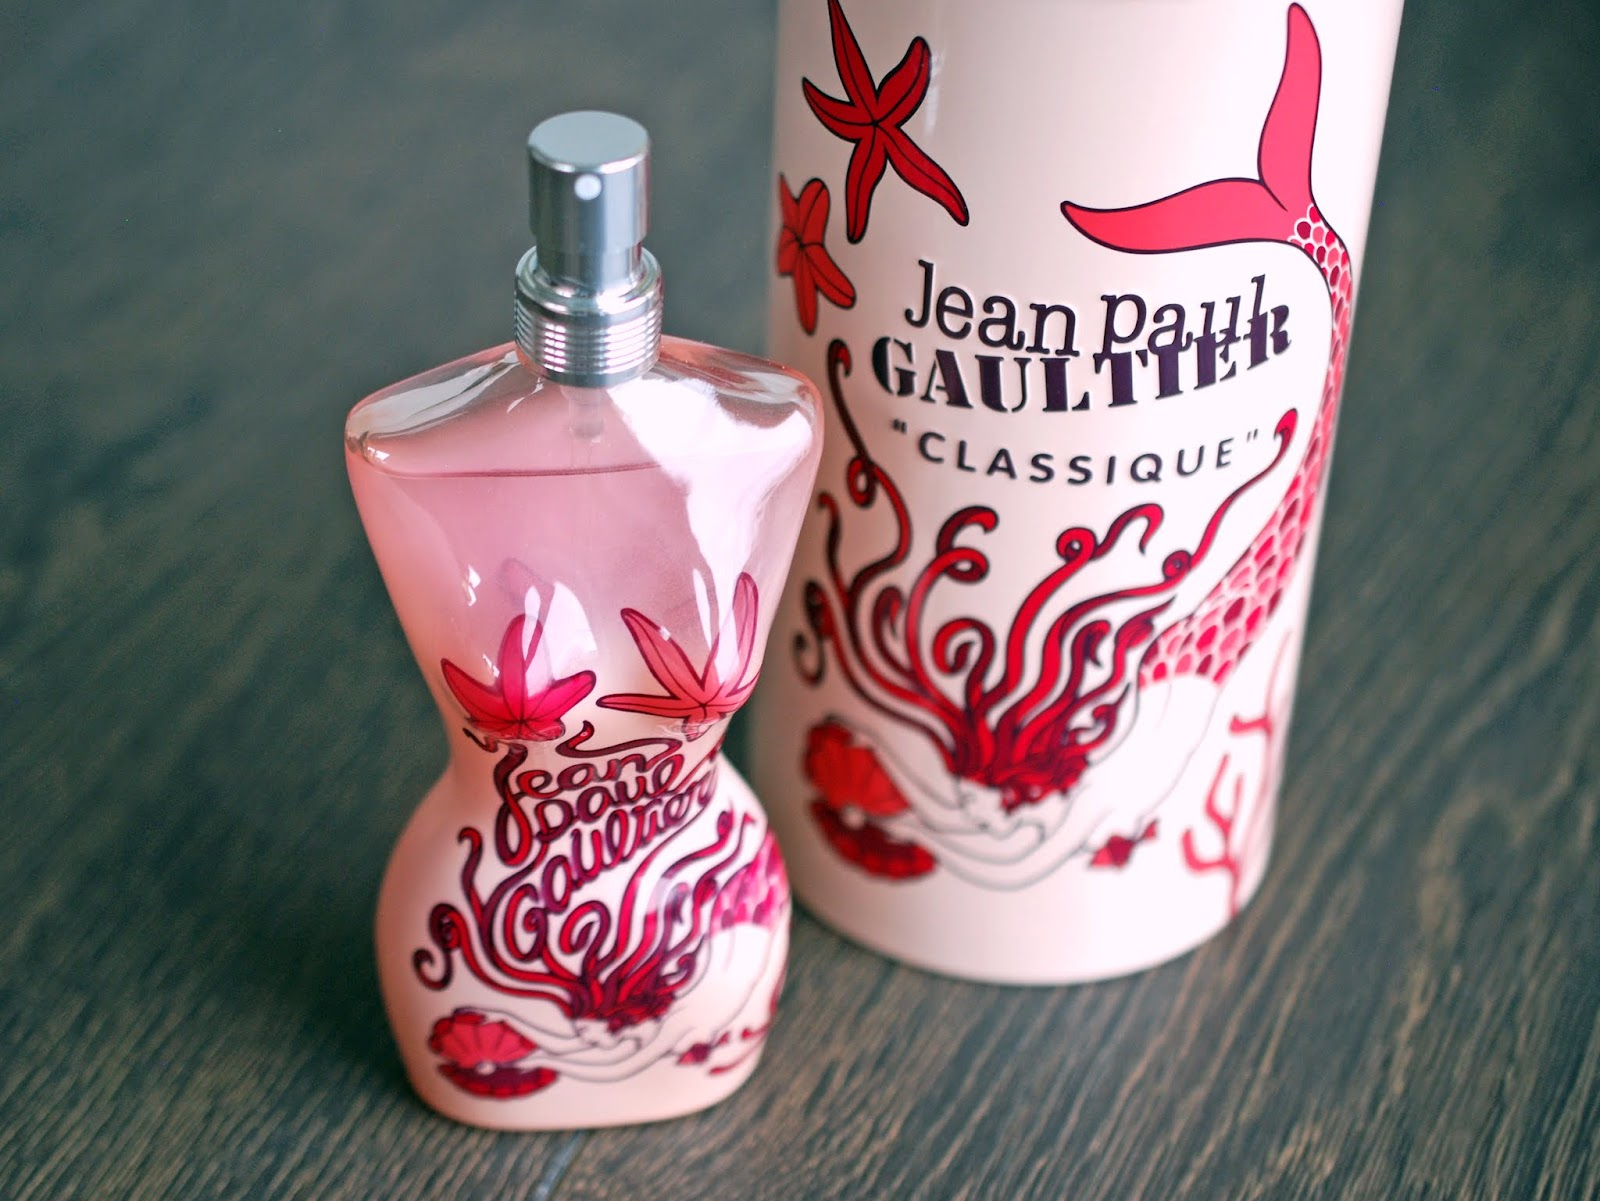 Jean Paul Gaultier Classique Eau de Toilette Summer Fragrance 2014 Review & Duftbeschreibung